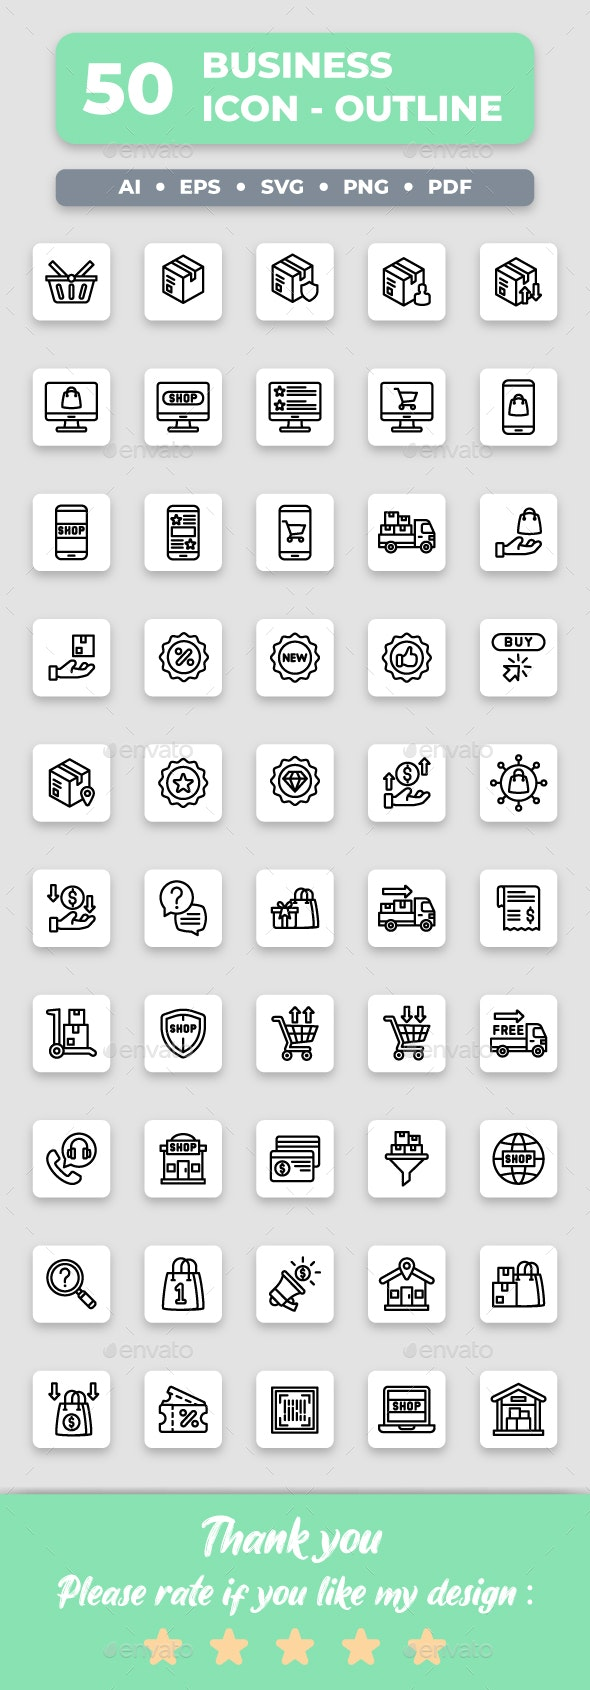 Ecommerce - Outline Collection Icon Set - Business Icons